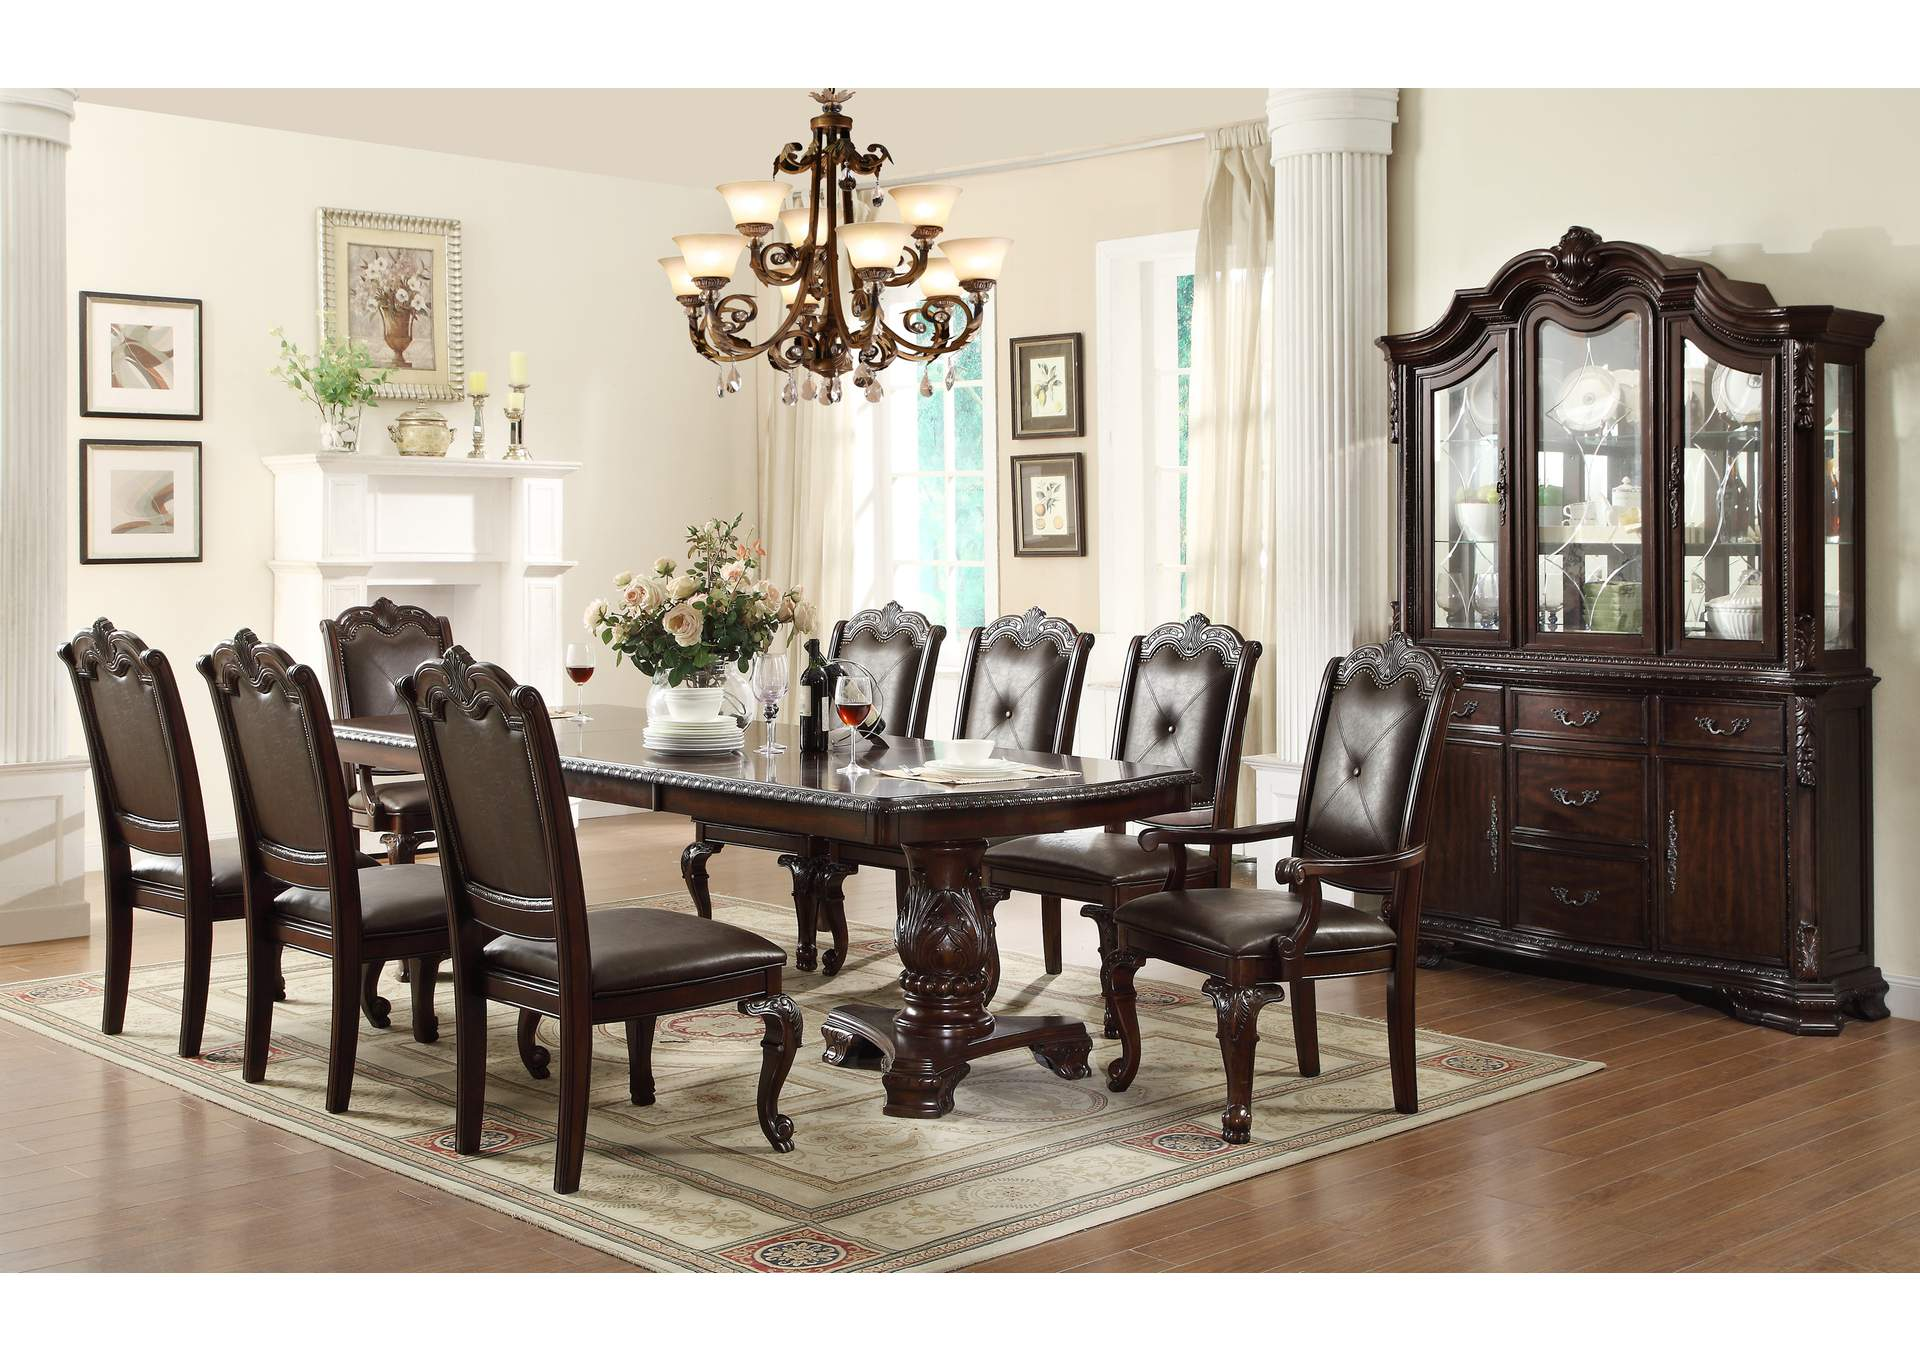 kiera rectangular dining room table w6 side chairs and 2 armed chairscrown